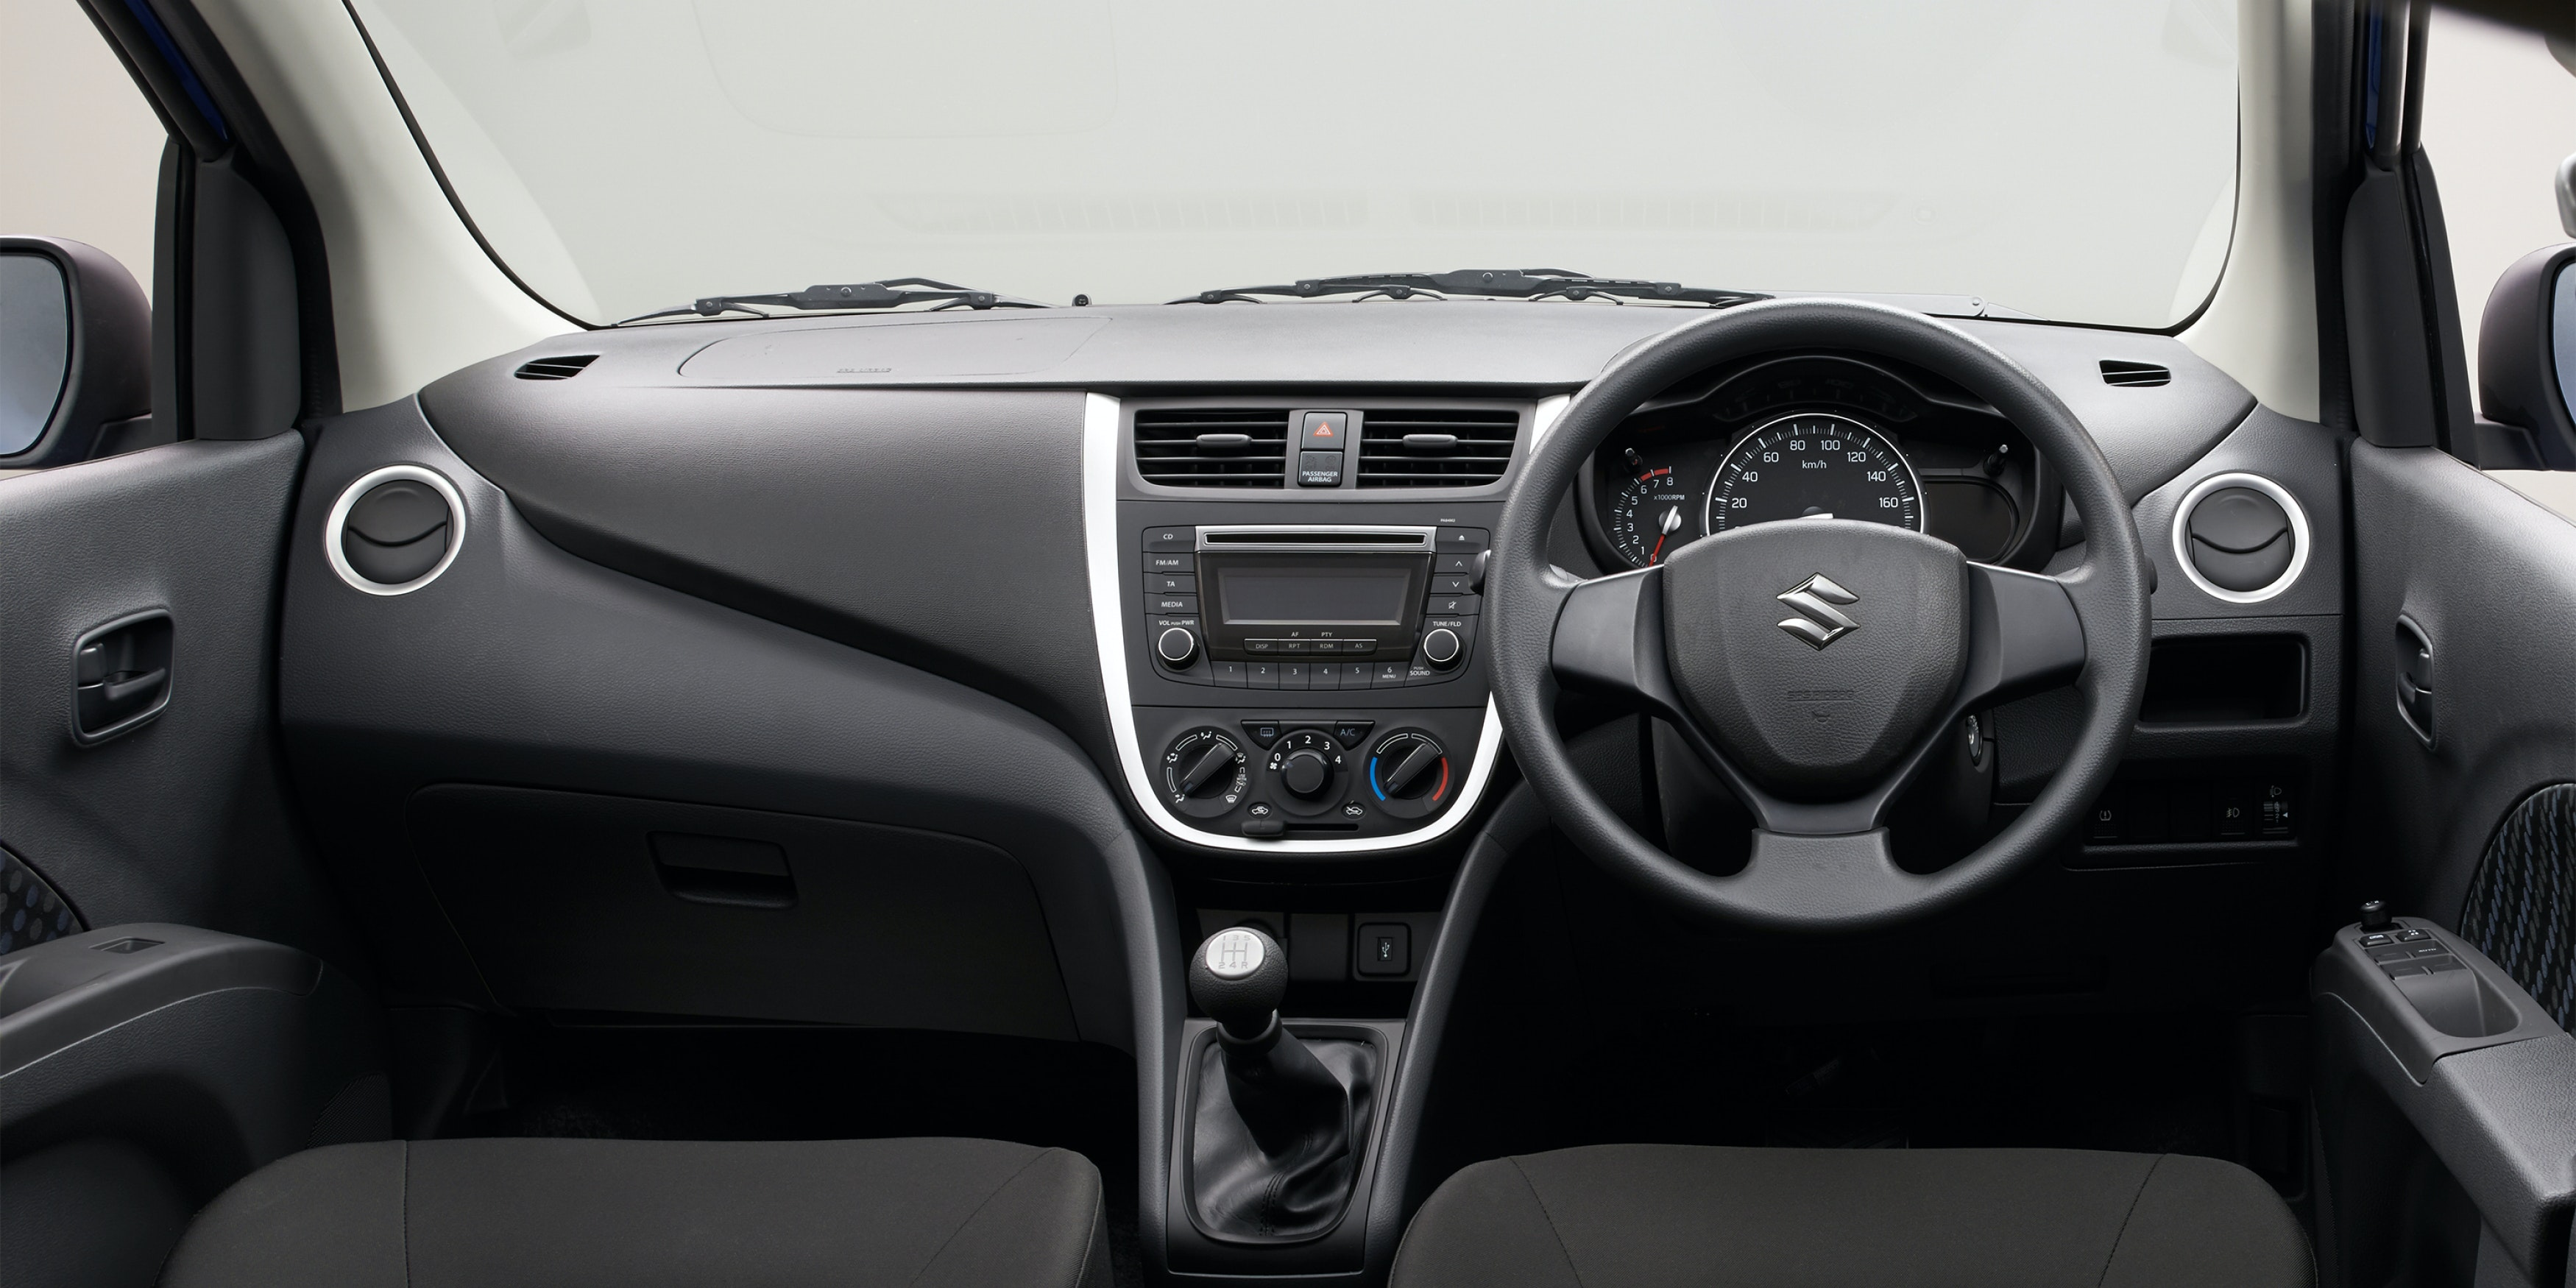 What the dashboard lacks in style and quality, it more than makes up for with ease of use